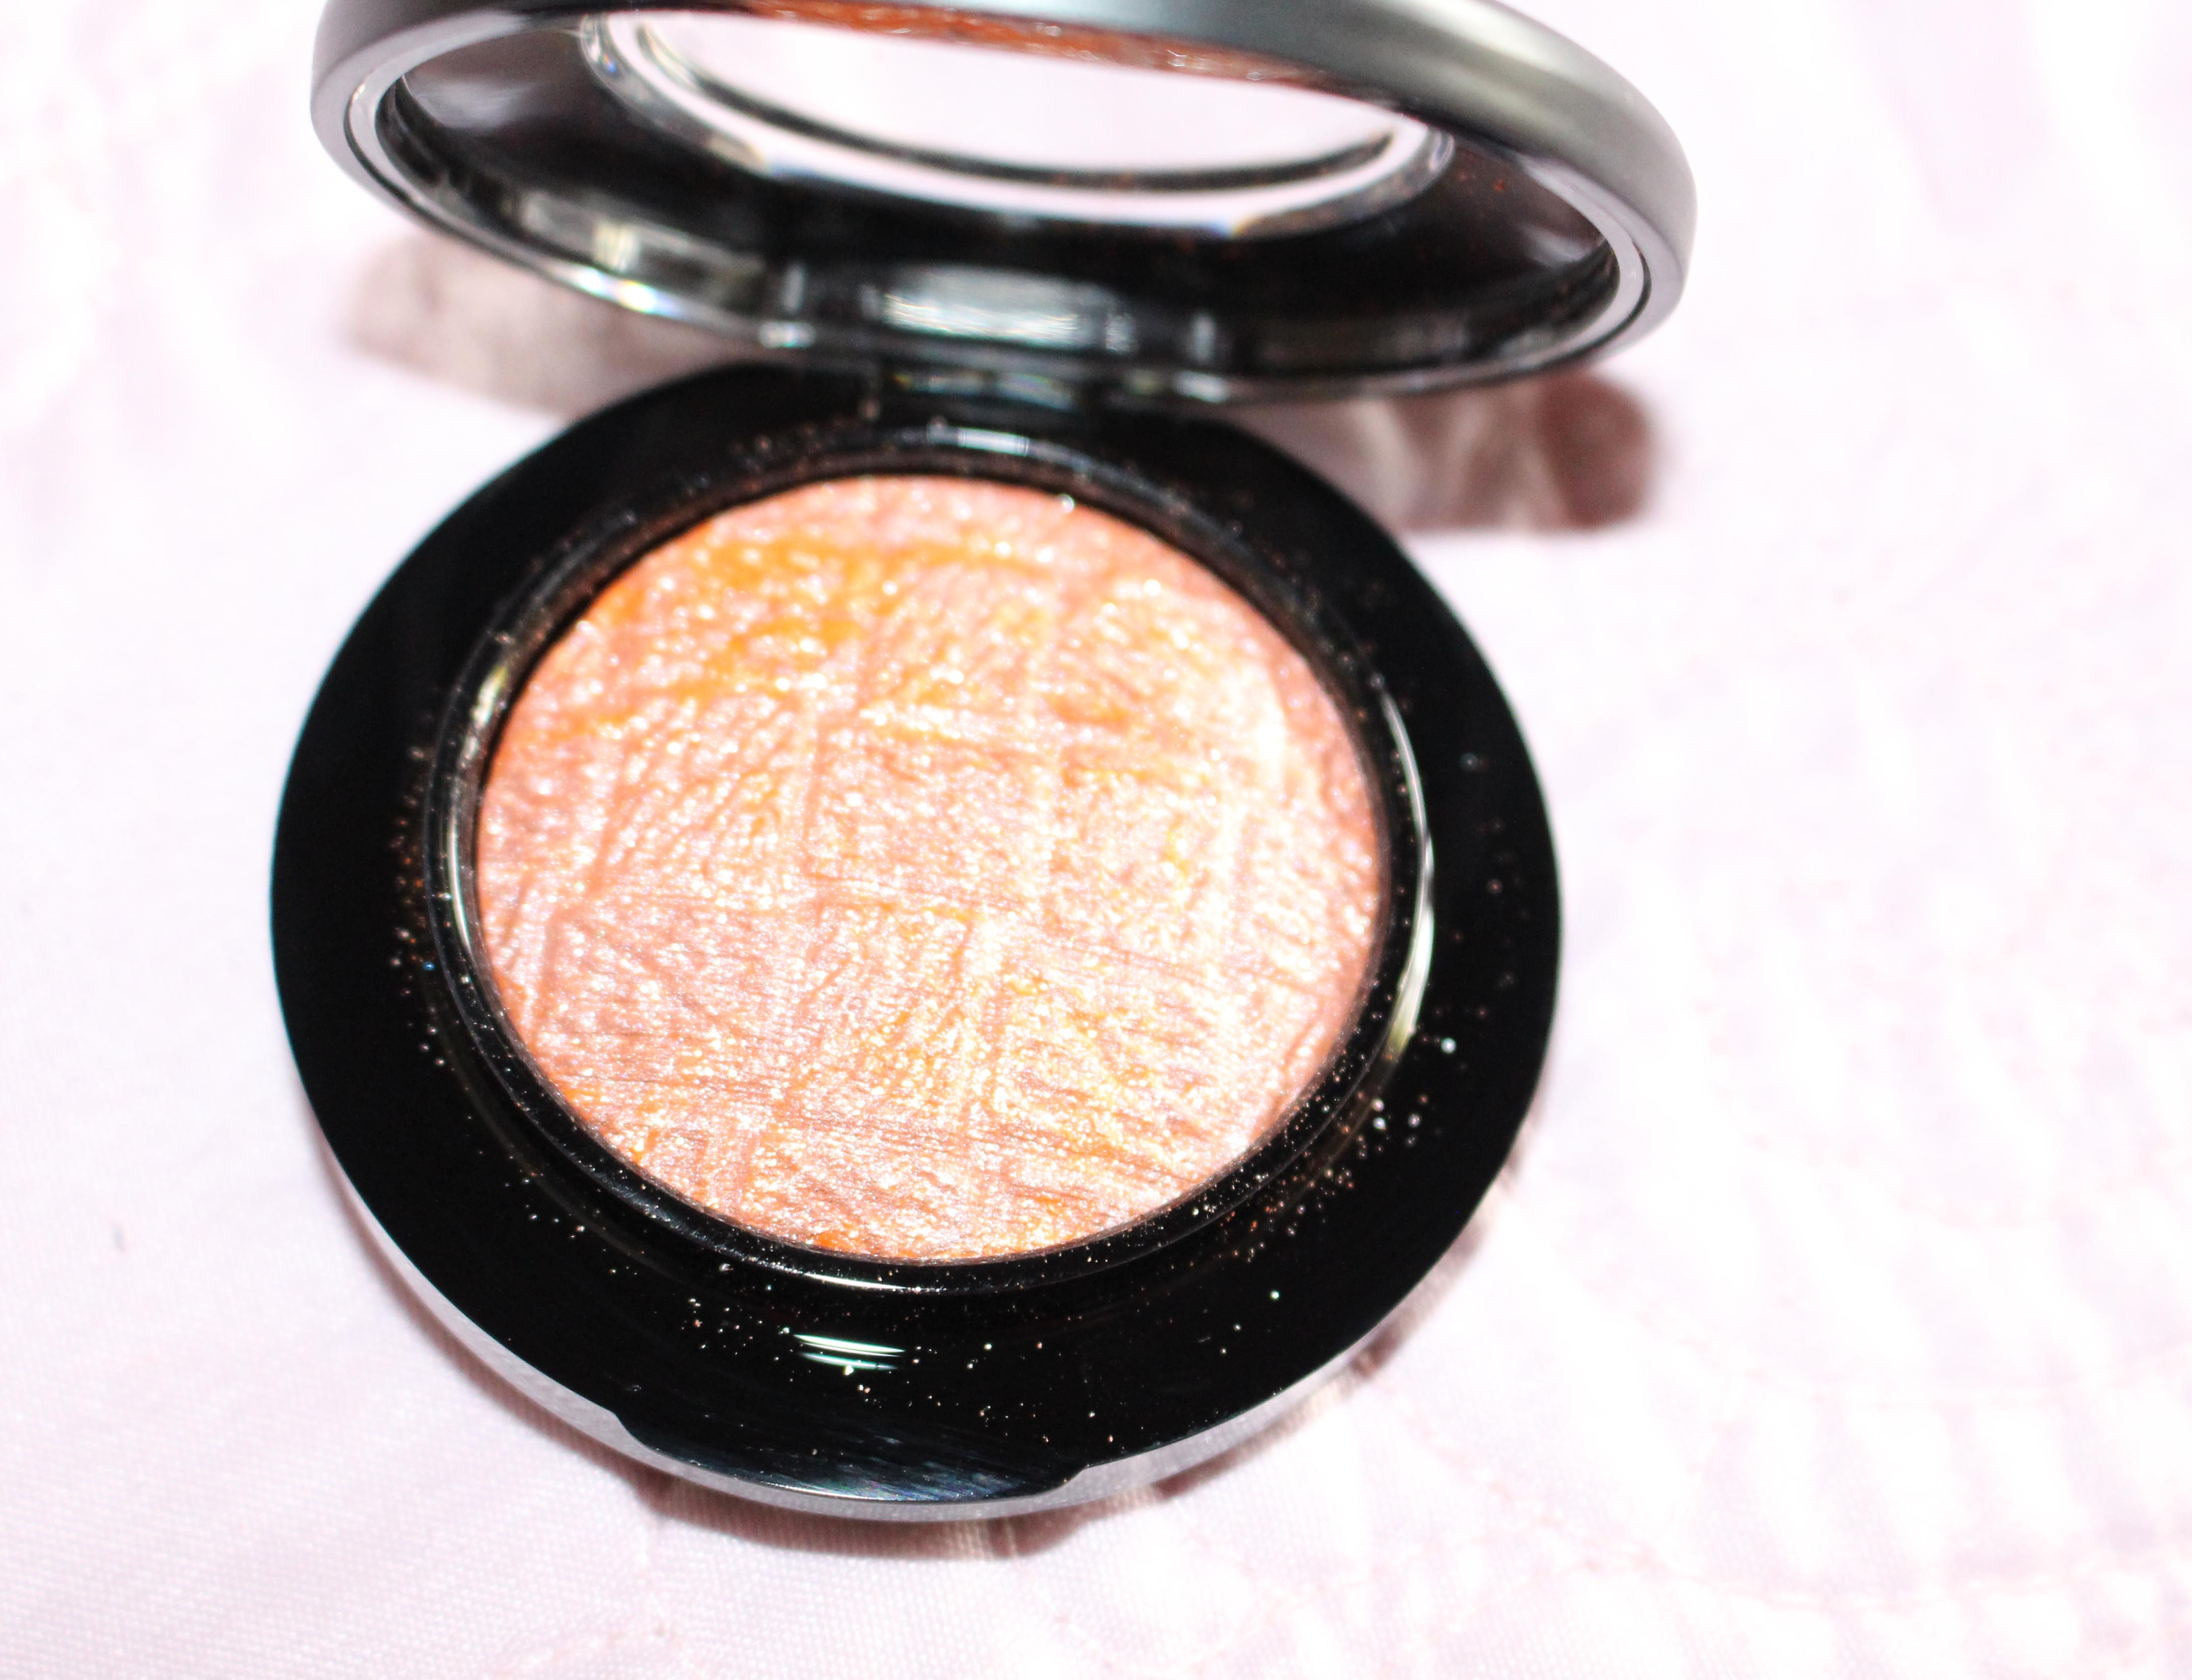 The tweed design is the nicest touch about this blush, which is pretty lame.